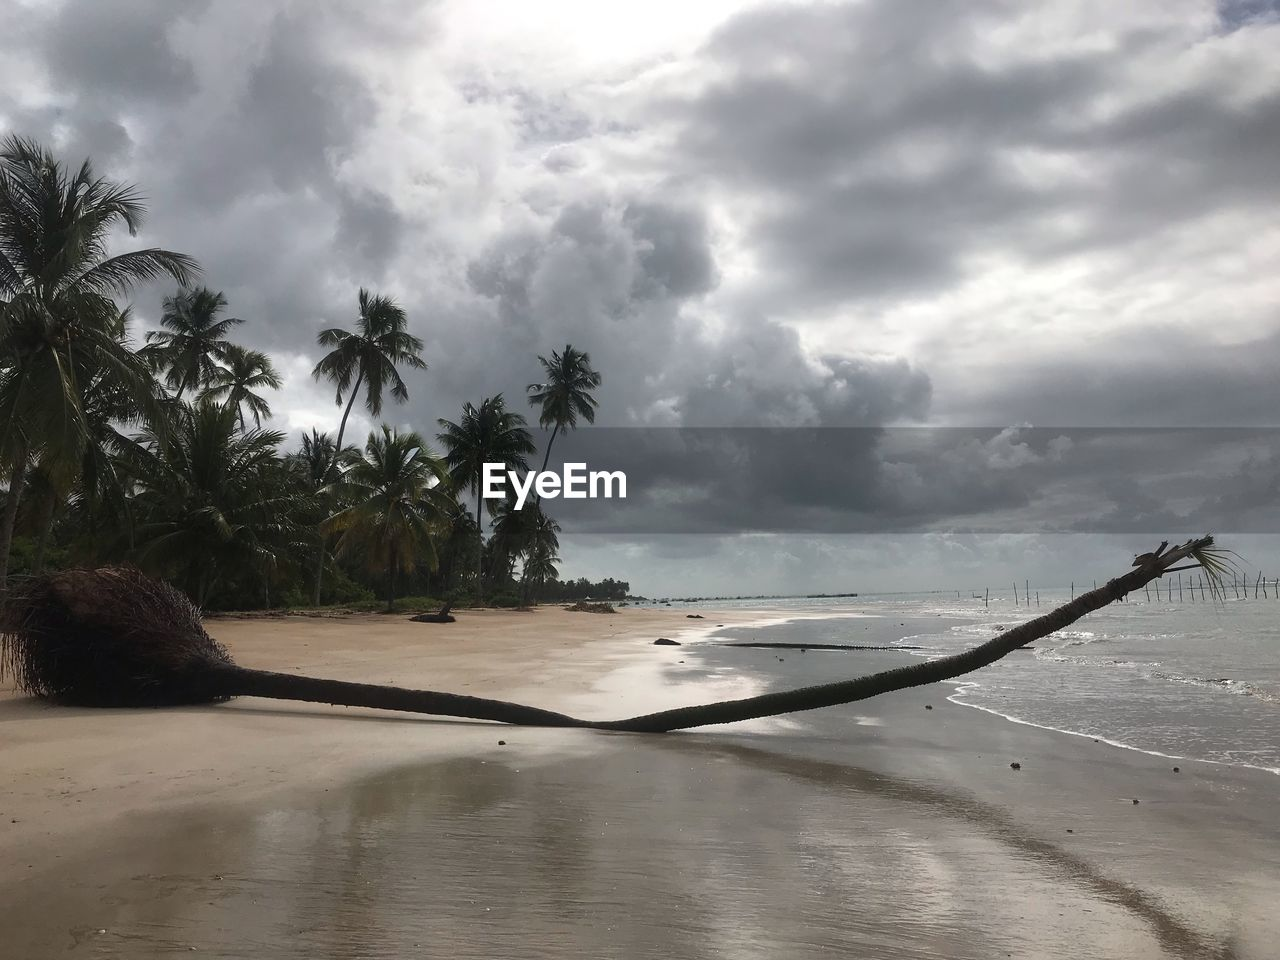 cloud - sky, sky, tree, palm tree, tropical climate, water, beauty in nature, beach, plant, nature, land, scenics - nature, sea, tranquility, tranquil scene, day, sand, no people, outdoors, coconut palm tree